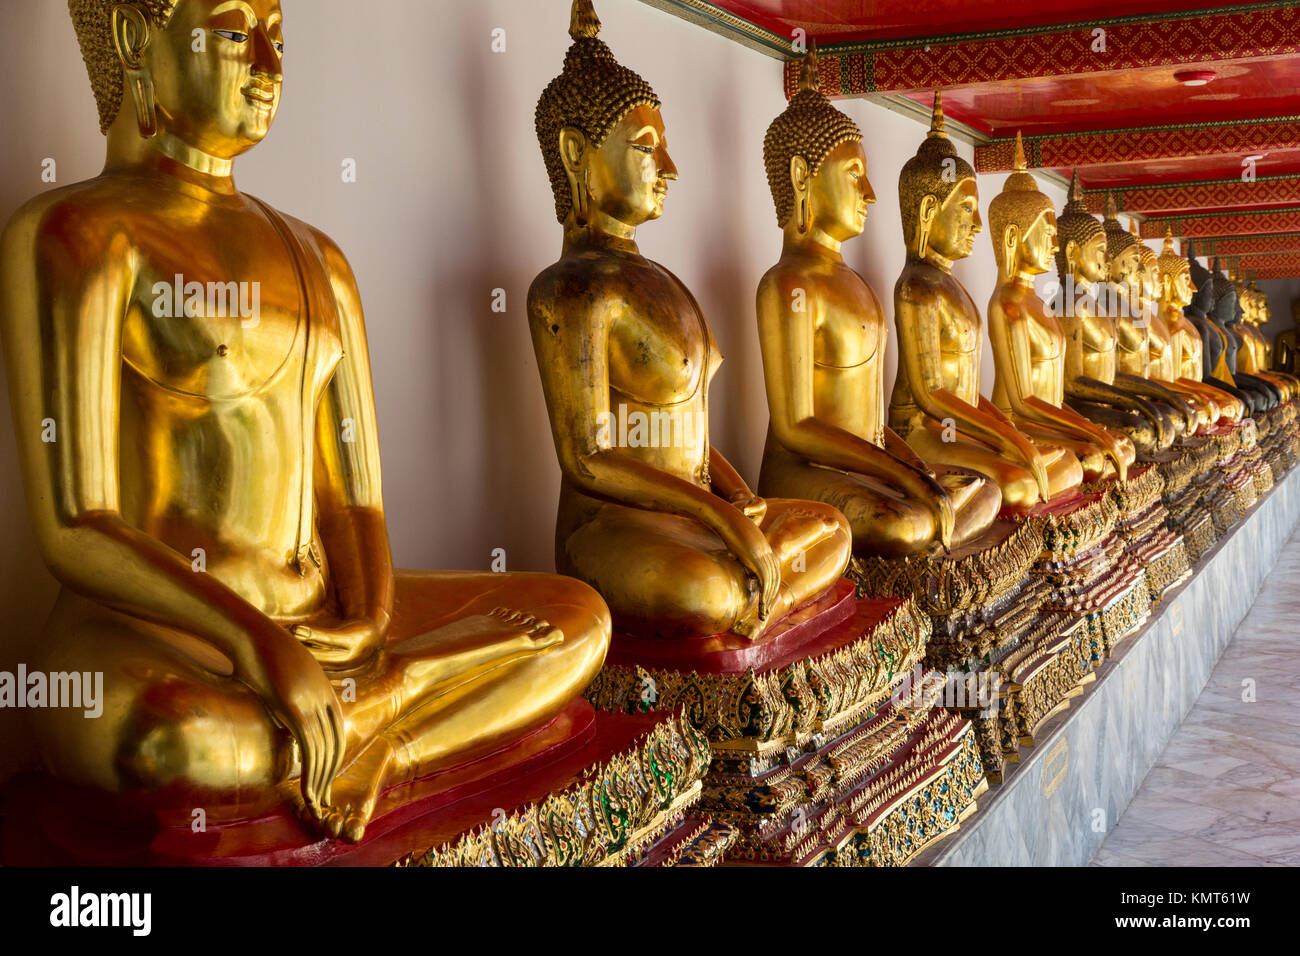 Bangkok, Thailand.  Buddhas in the South Pavilion, Wat Pho (Reclining Buddha) Temple Complex. - Stock Image